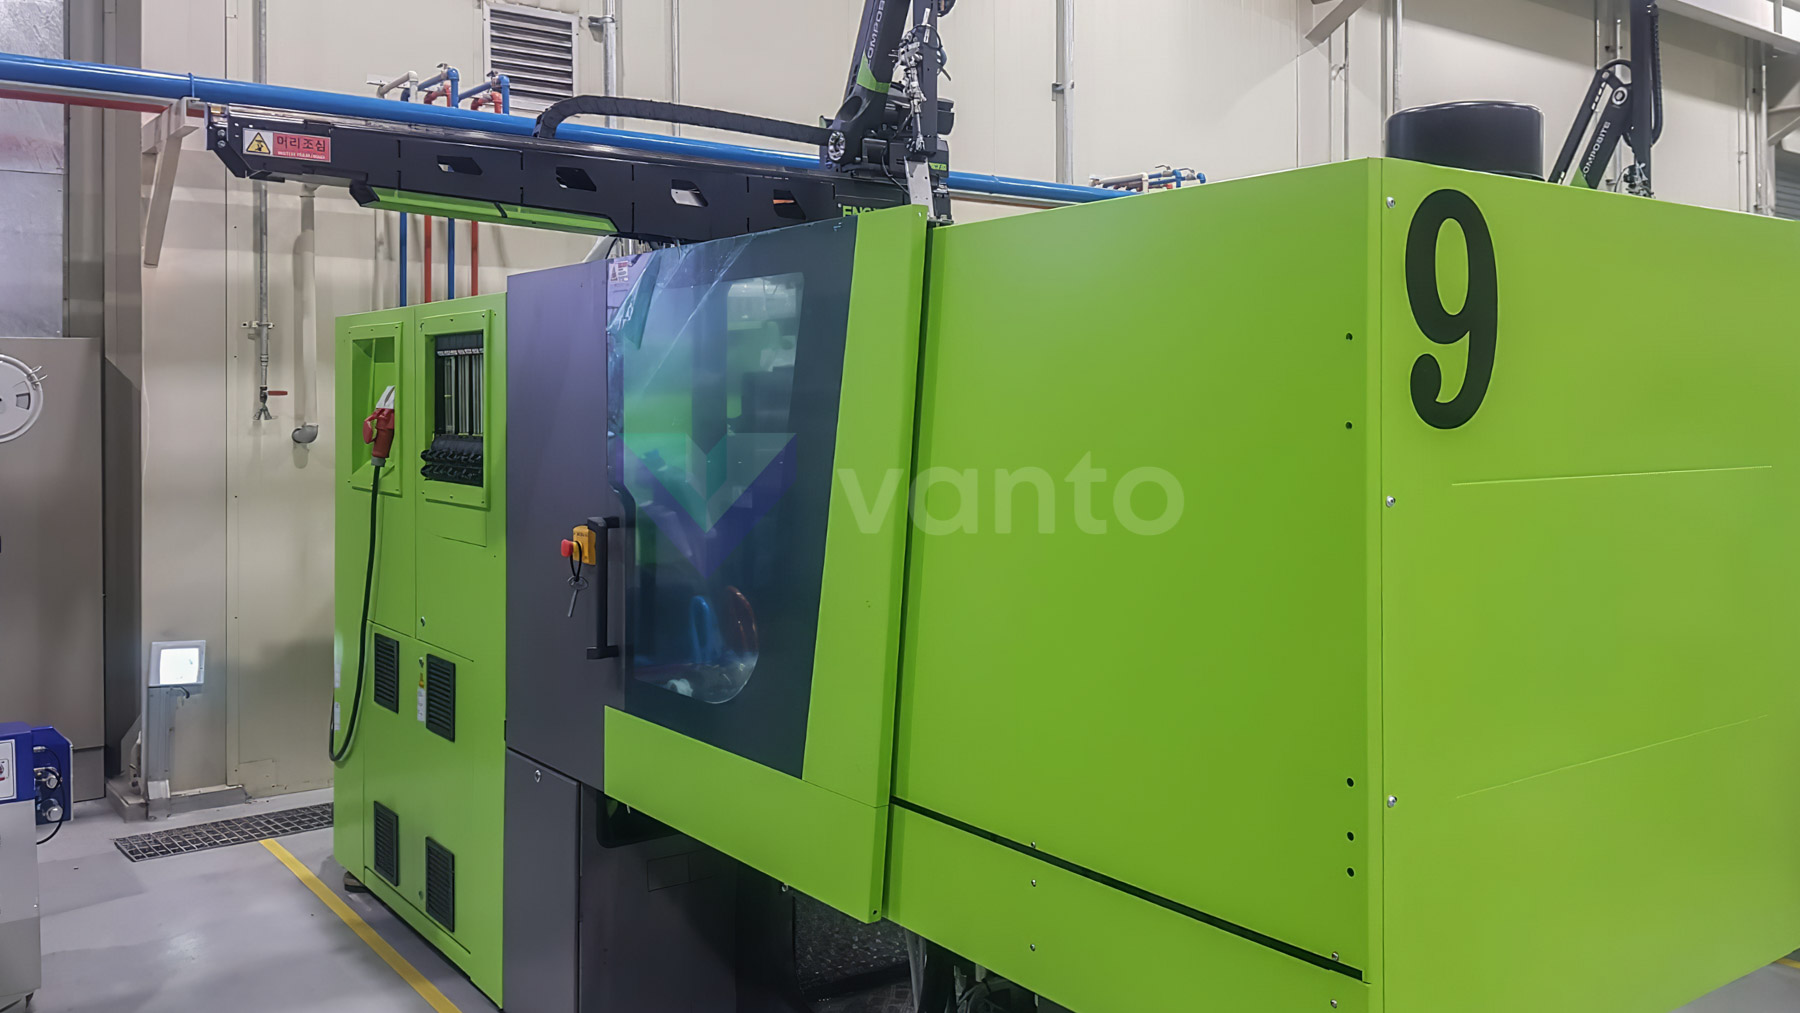 ENGEL VICTORY VC 330 / 80 TECH PRO 80t injection molding machine (2018) id10411